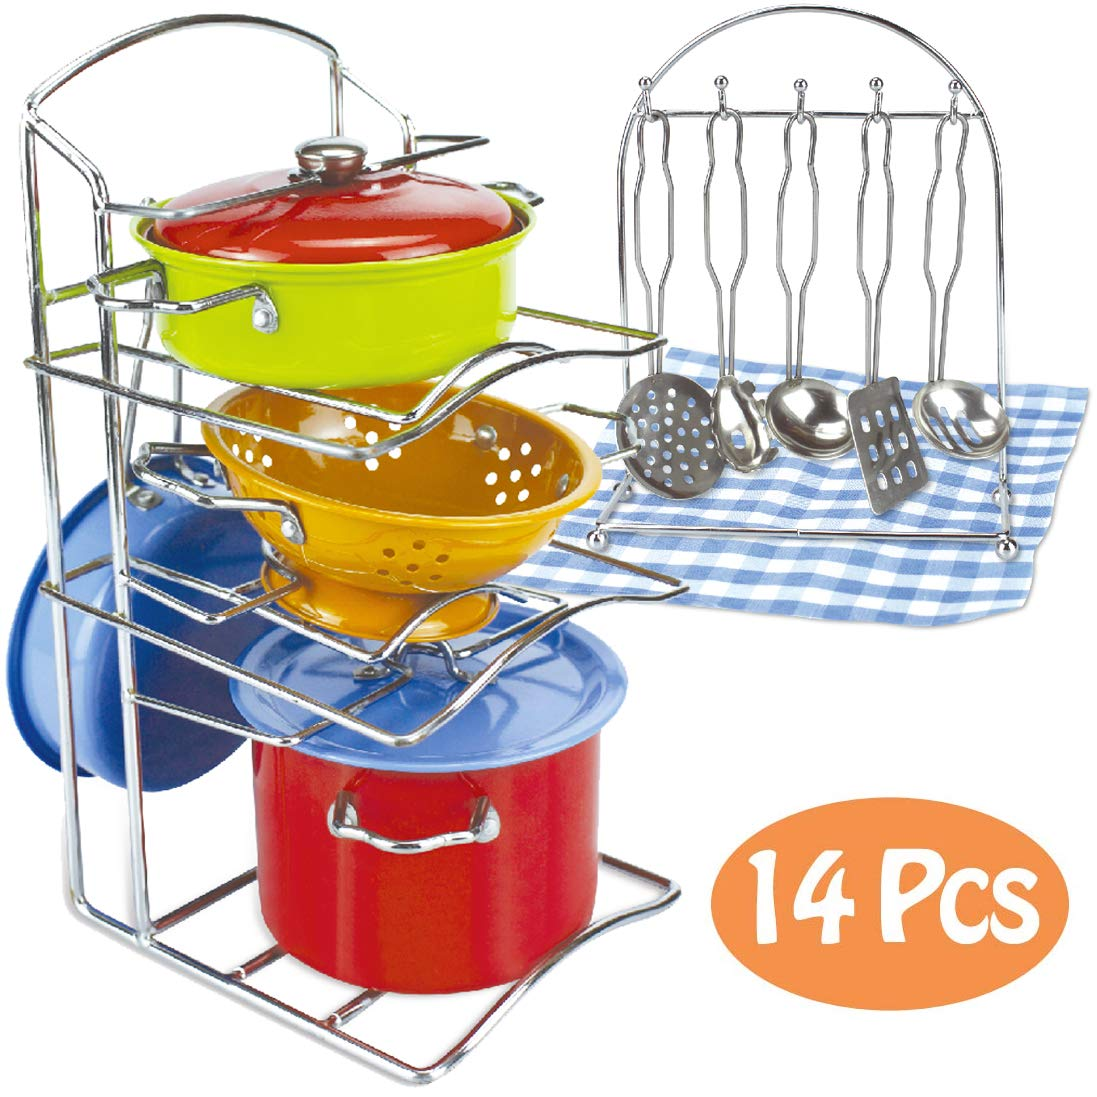 Liberty Imports Kids Play Kitchen Toys Pretend Cooking Multicolored Stainless Steel Pots and Pans Metal Dish Rack Kitchen Set with Utensils (14 Pieces) by Liberty Imports